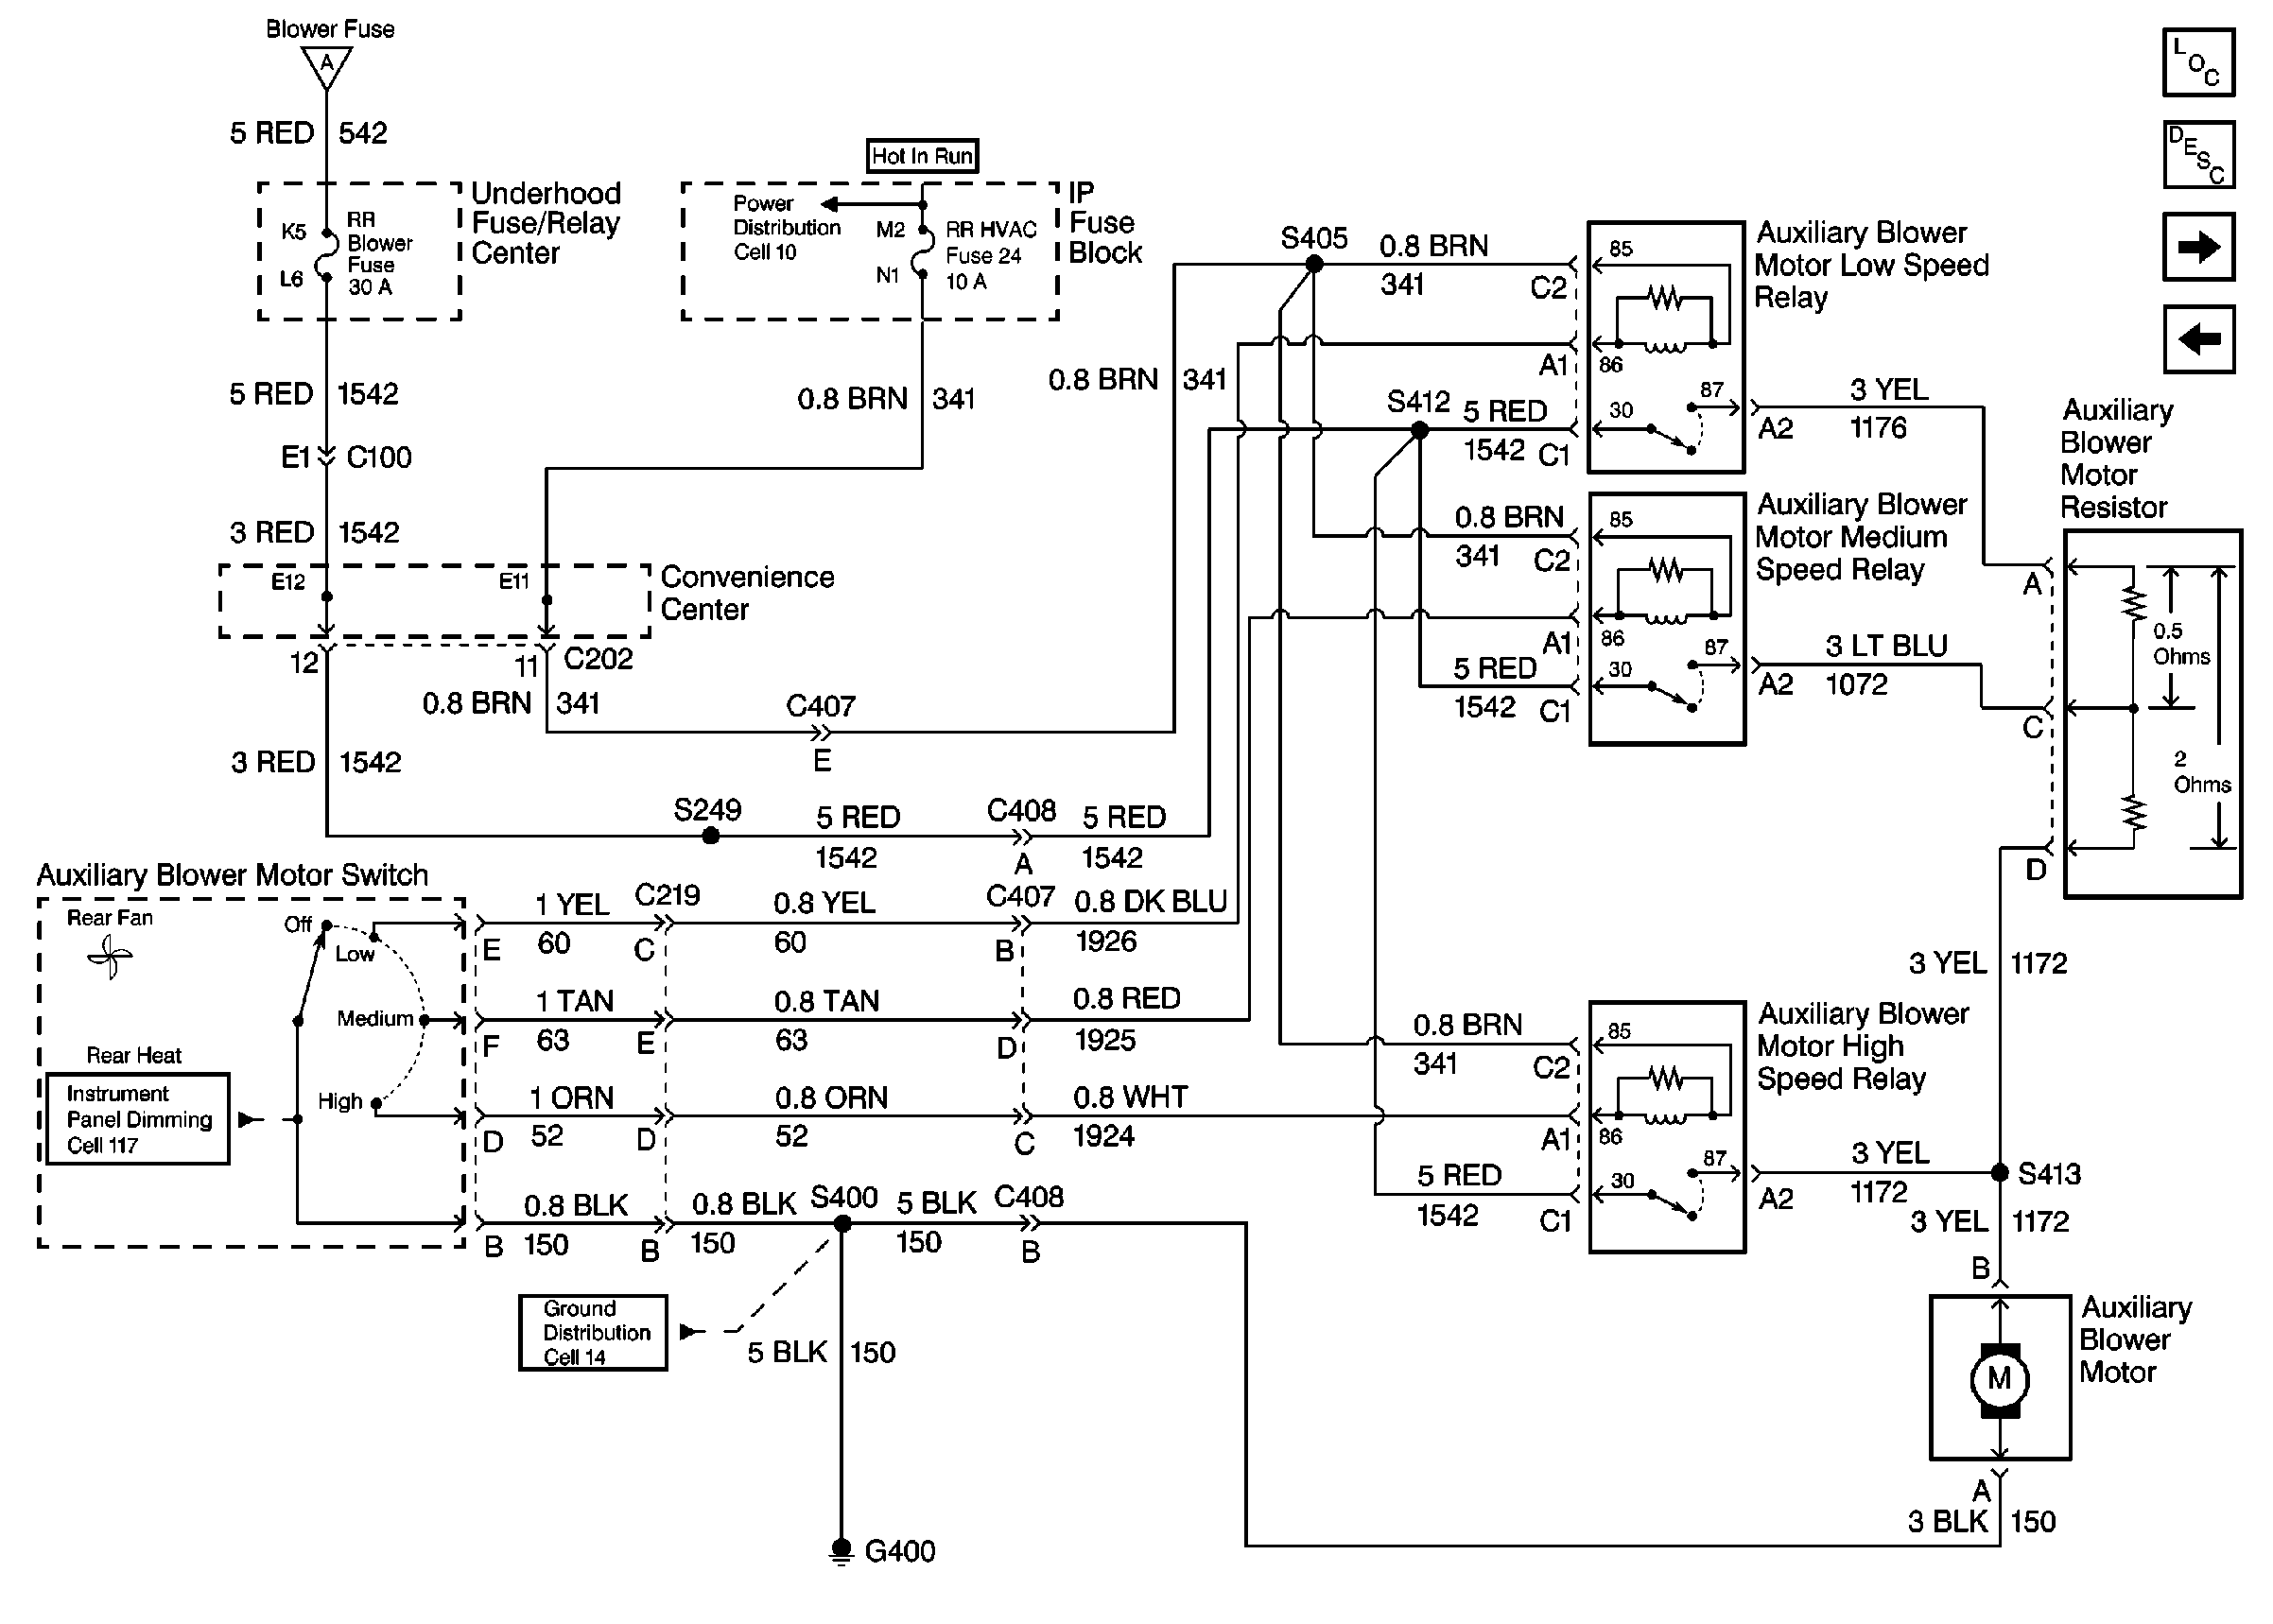 2001 chevy 3500 wiring diagram chloeminette co uk \u20222000 chevy c3500 wiring diagram free picture schema wiring diagram rh 13 bodyslimsmile nl 2001 chevy express 3500 wiring diagram 2001 chevy 3500 fuel pump